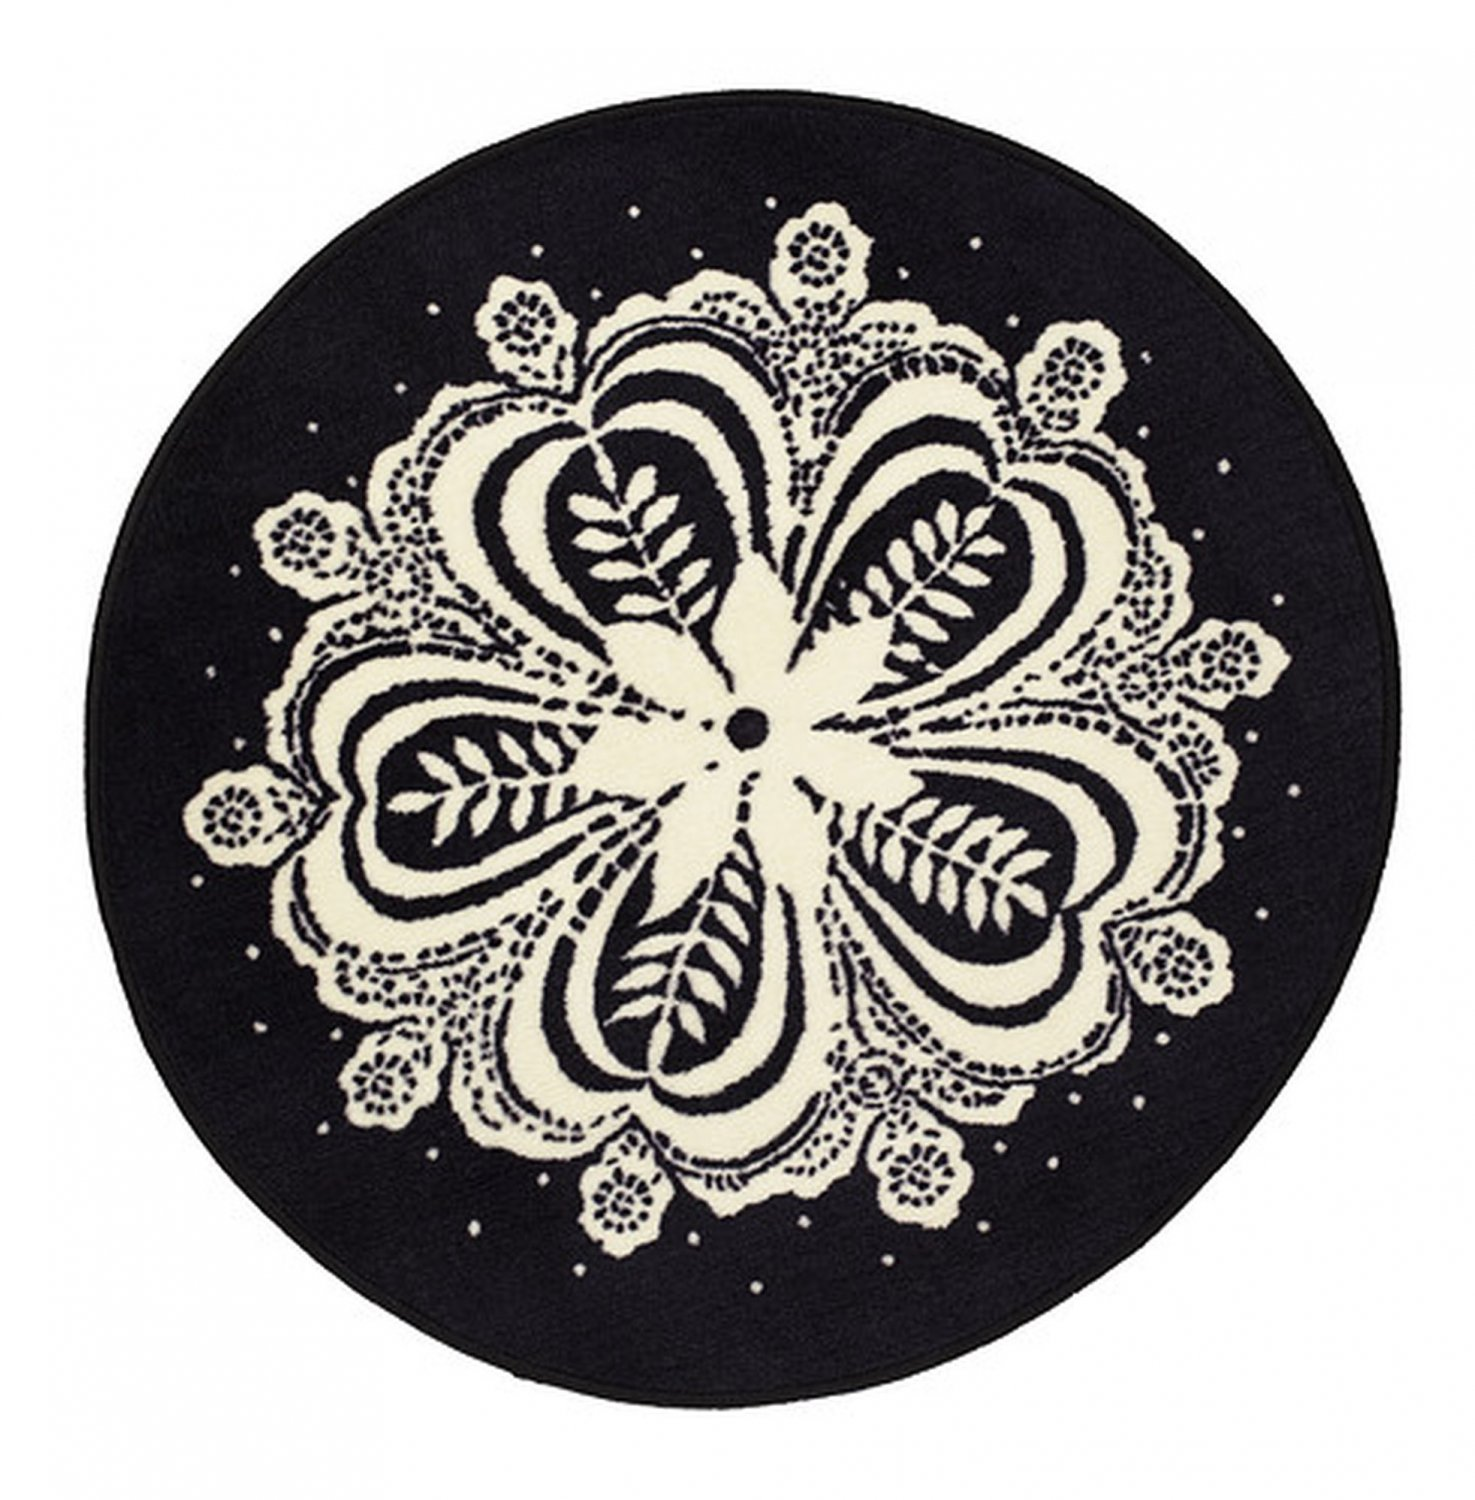 ikea flinga black white area rug throw mat mandela round snowflake xmas. Black Bedroom Furniture Sets. Home Design Ideas